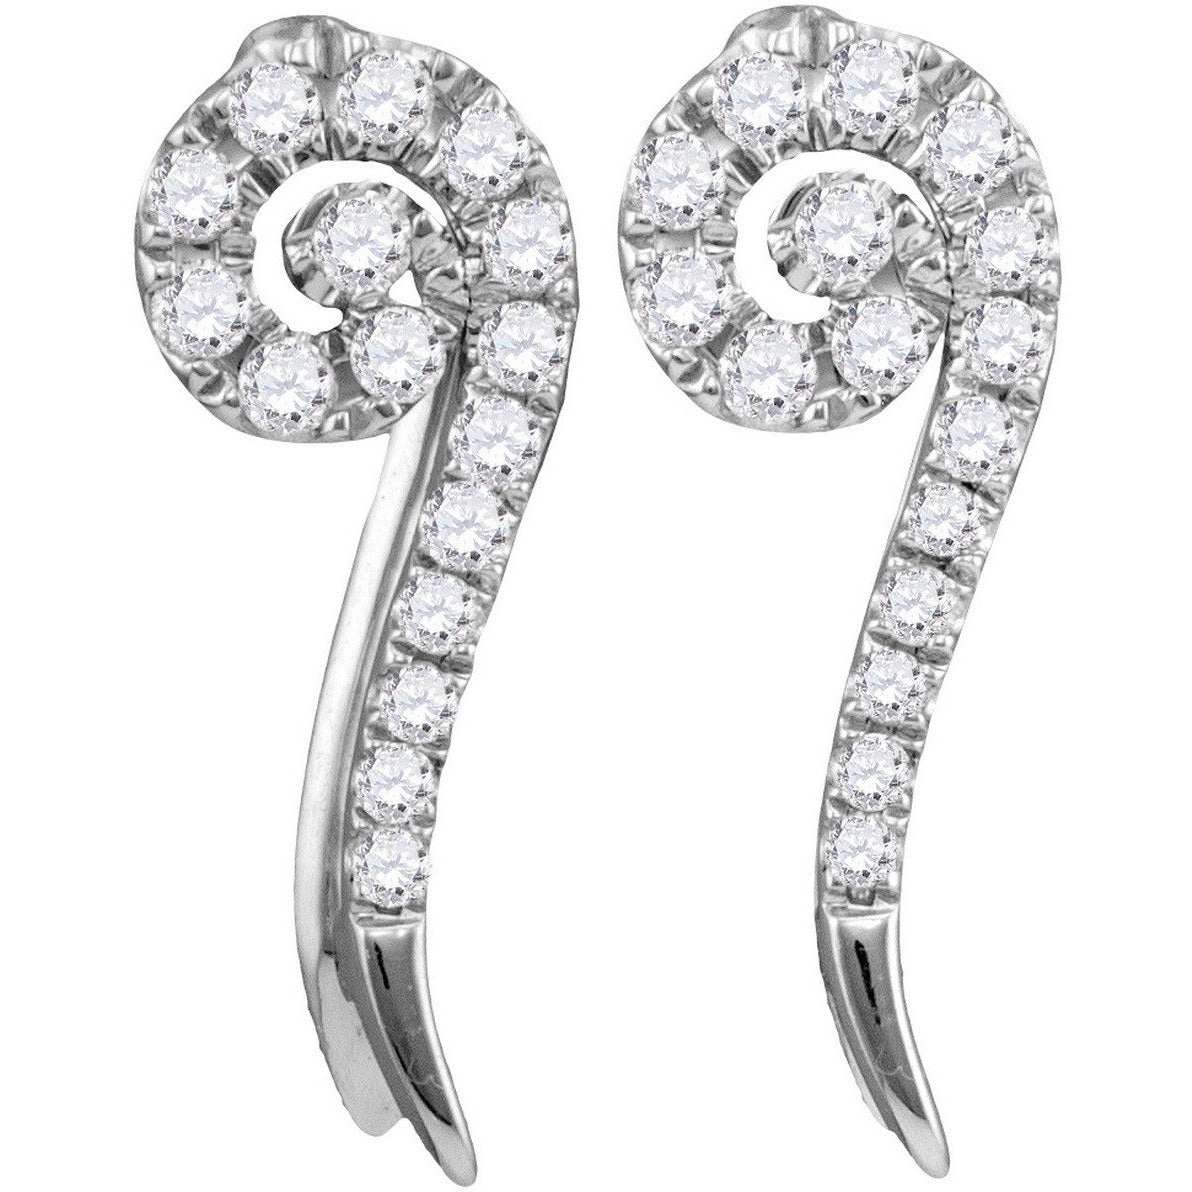 10kt White Gold Womens Round Diamond Curled Vertical Stud Earrings 1/4 Cttw 113468 - shirin-diamonds